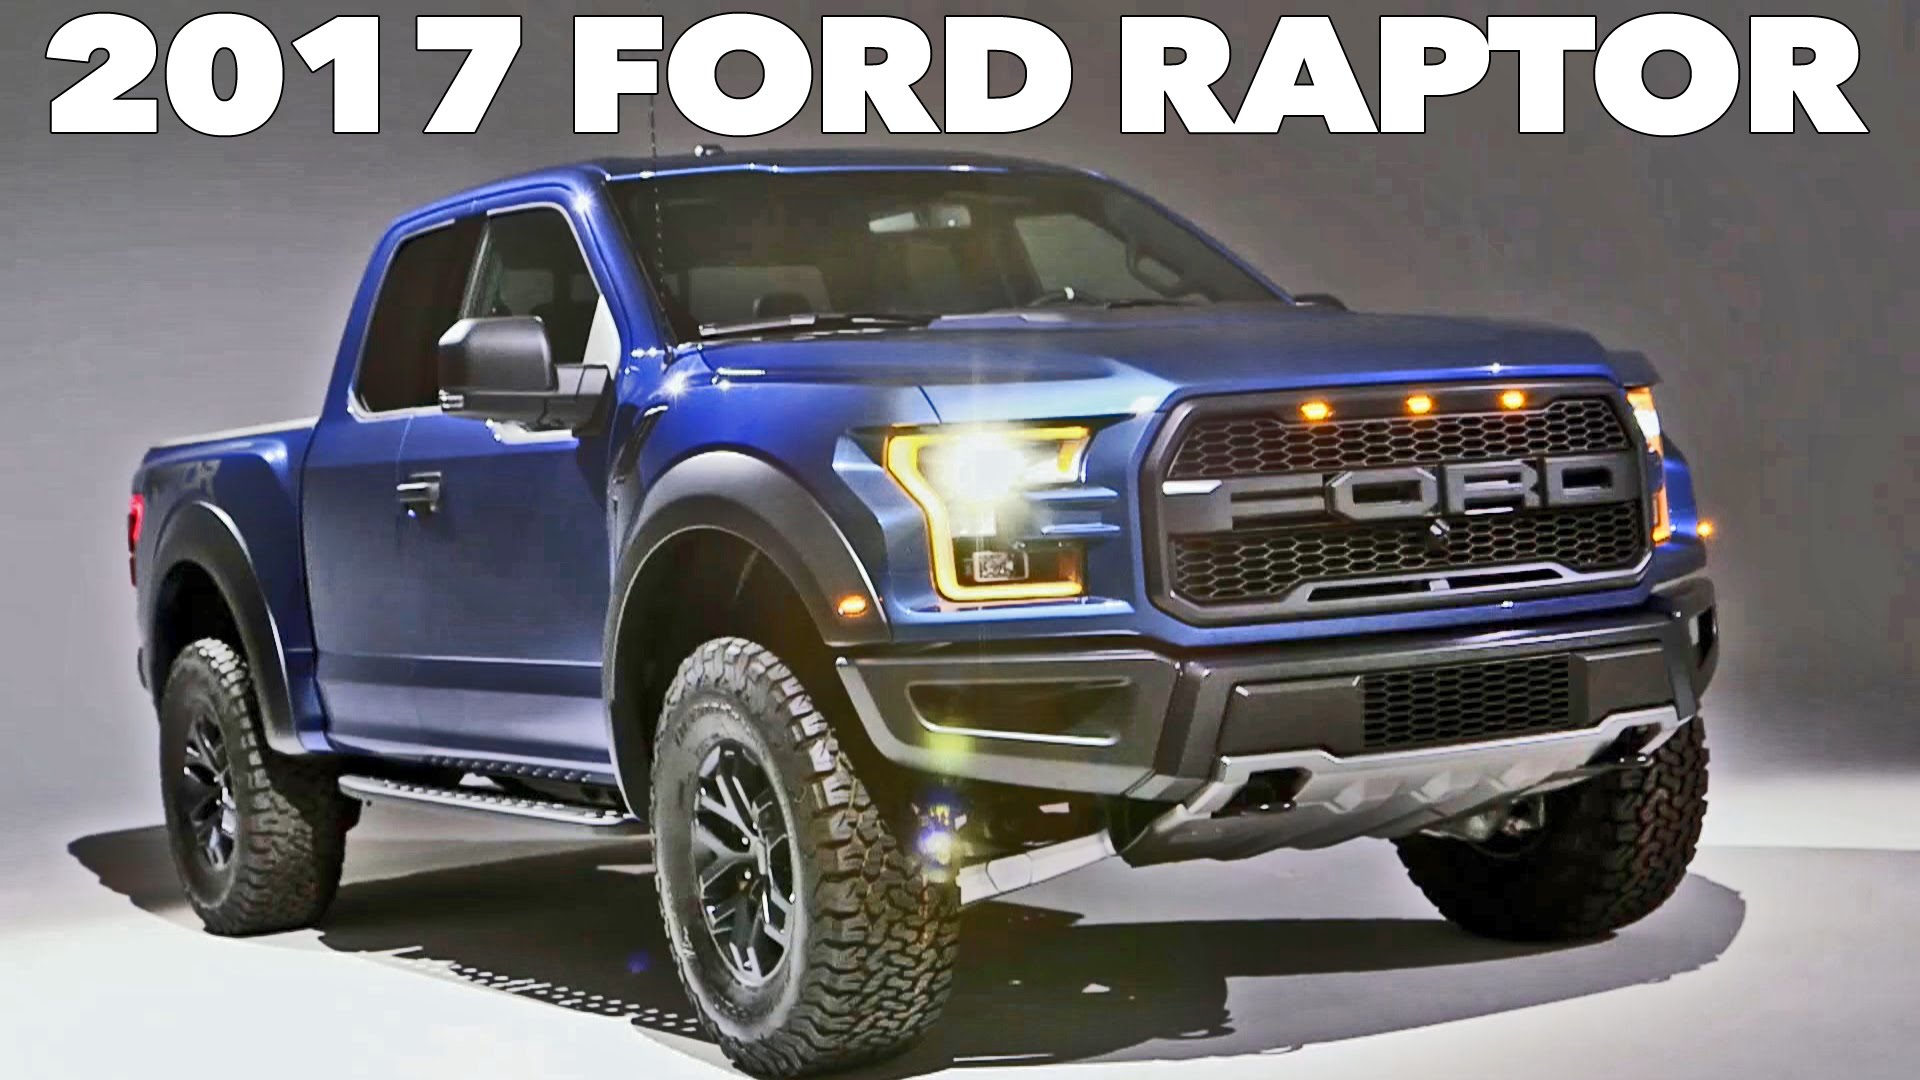 2017 ford f 150 raptor offers contenting driver modes for long drive ford reviews. Black Bedroom Furniture Sets. Home Design Ideas